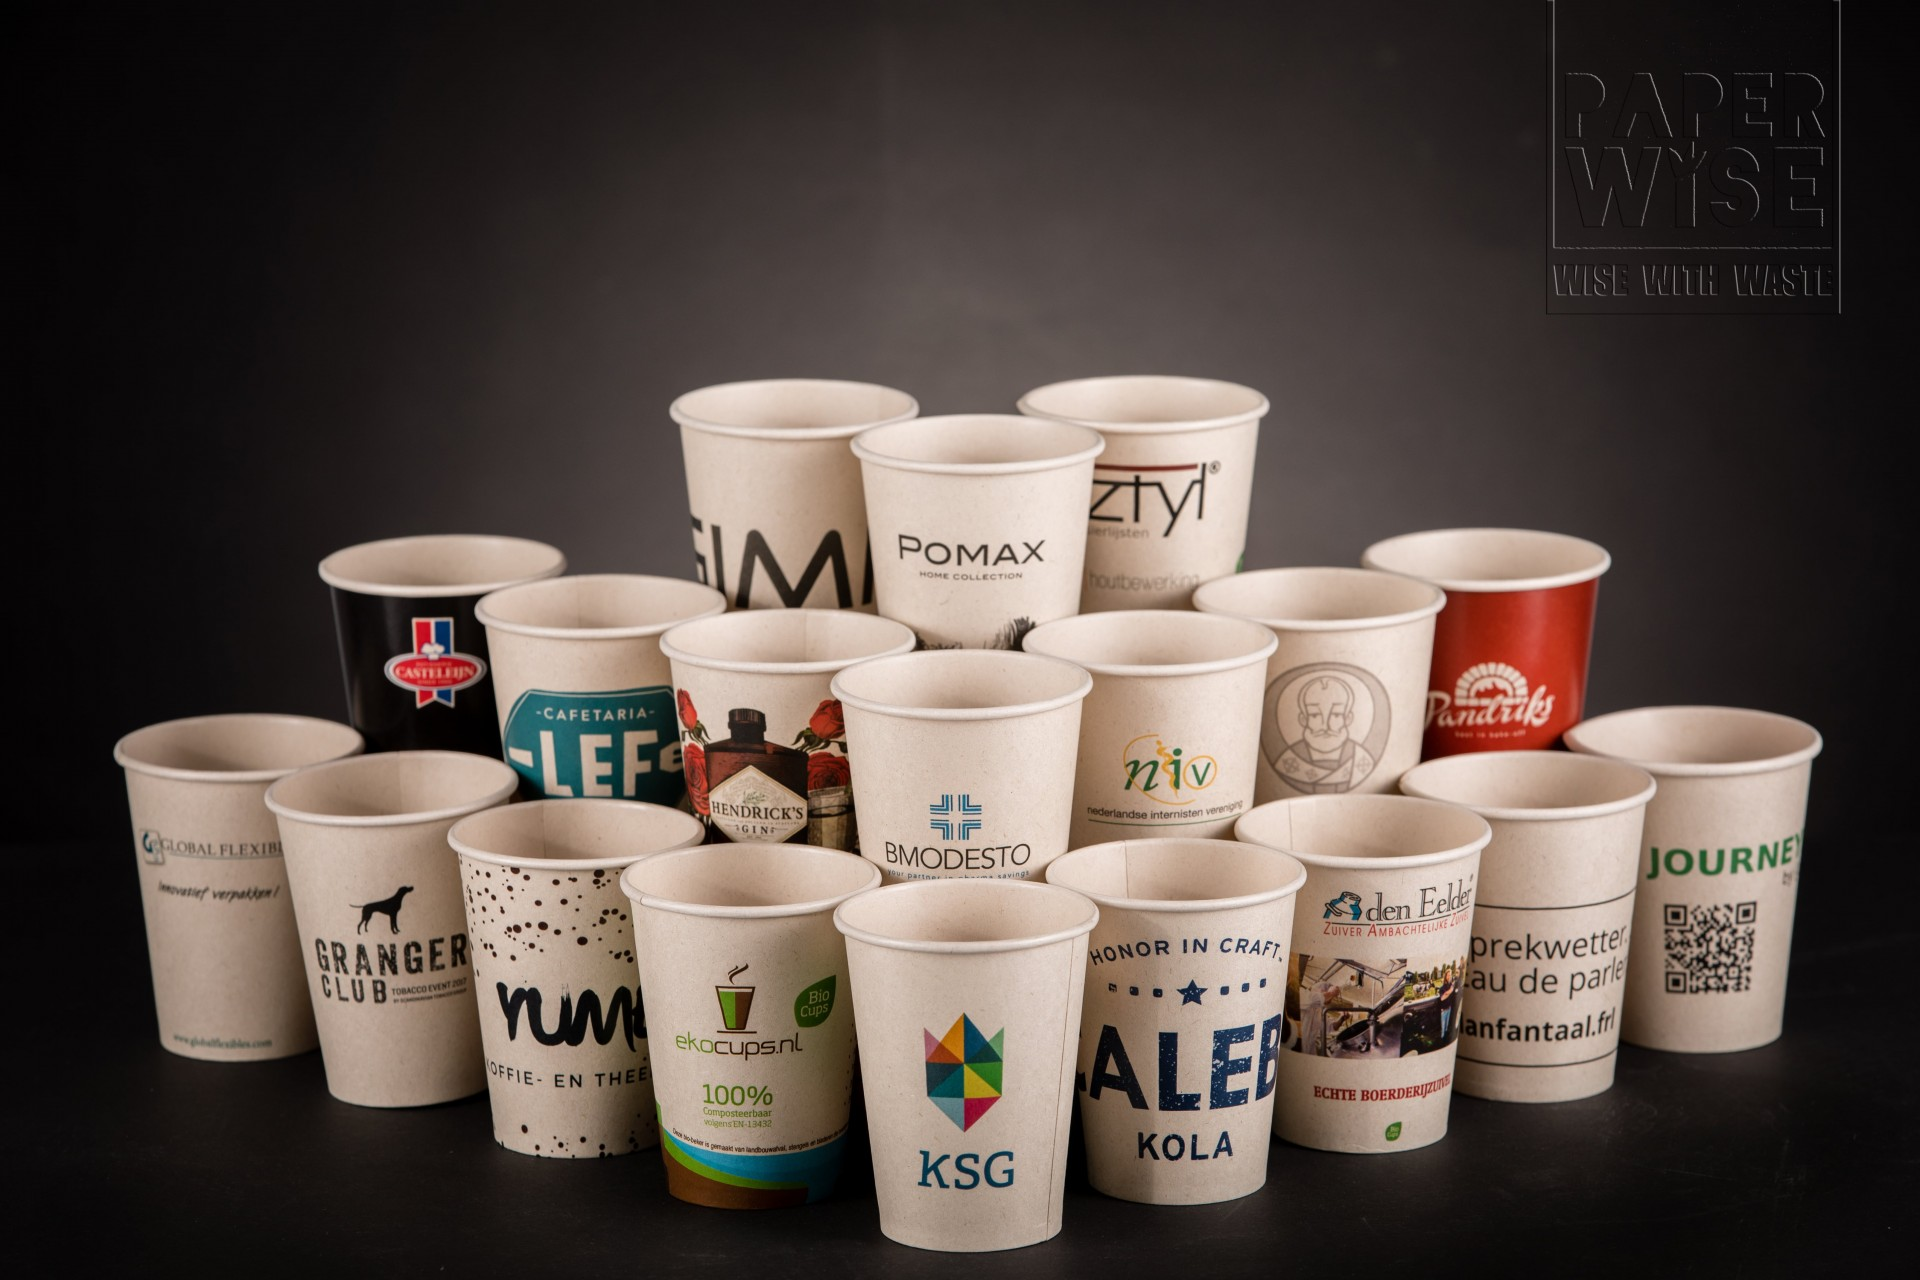 PaperWise organic paper cup eco friendly disposable paper tea coffee drinking cups office